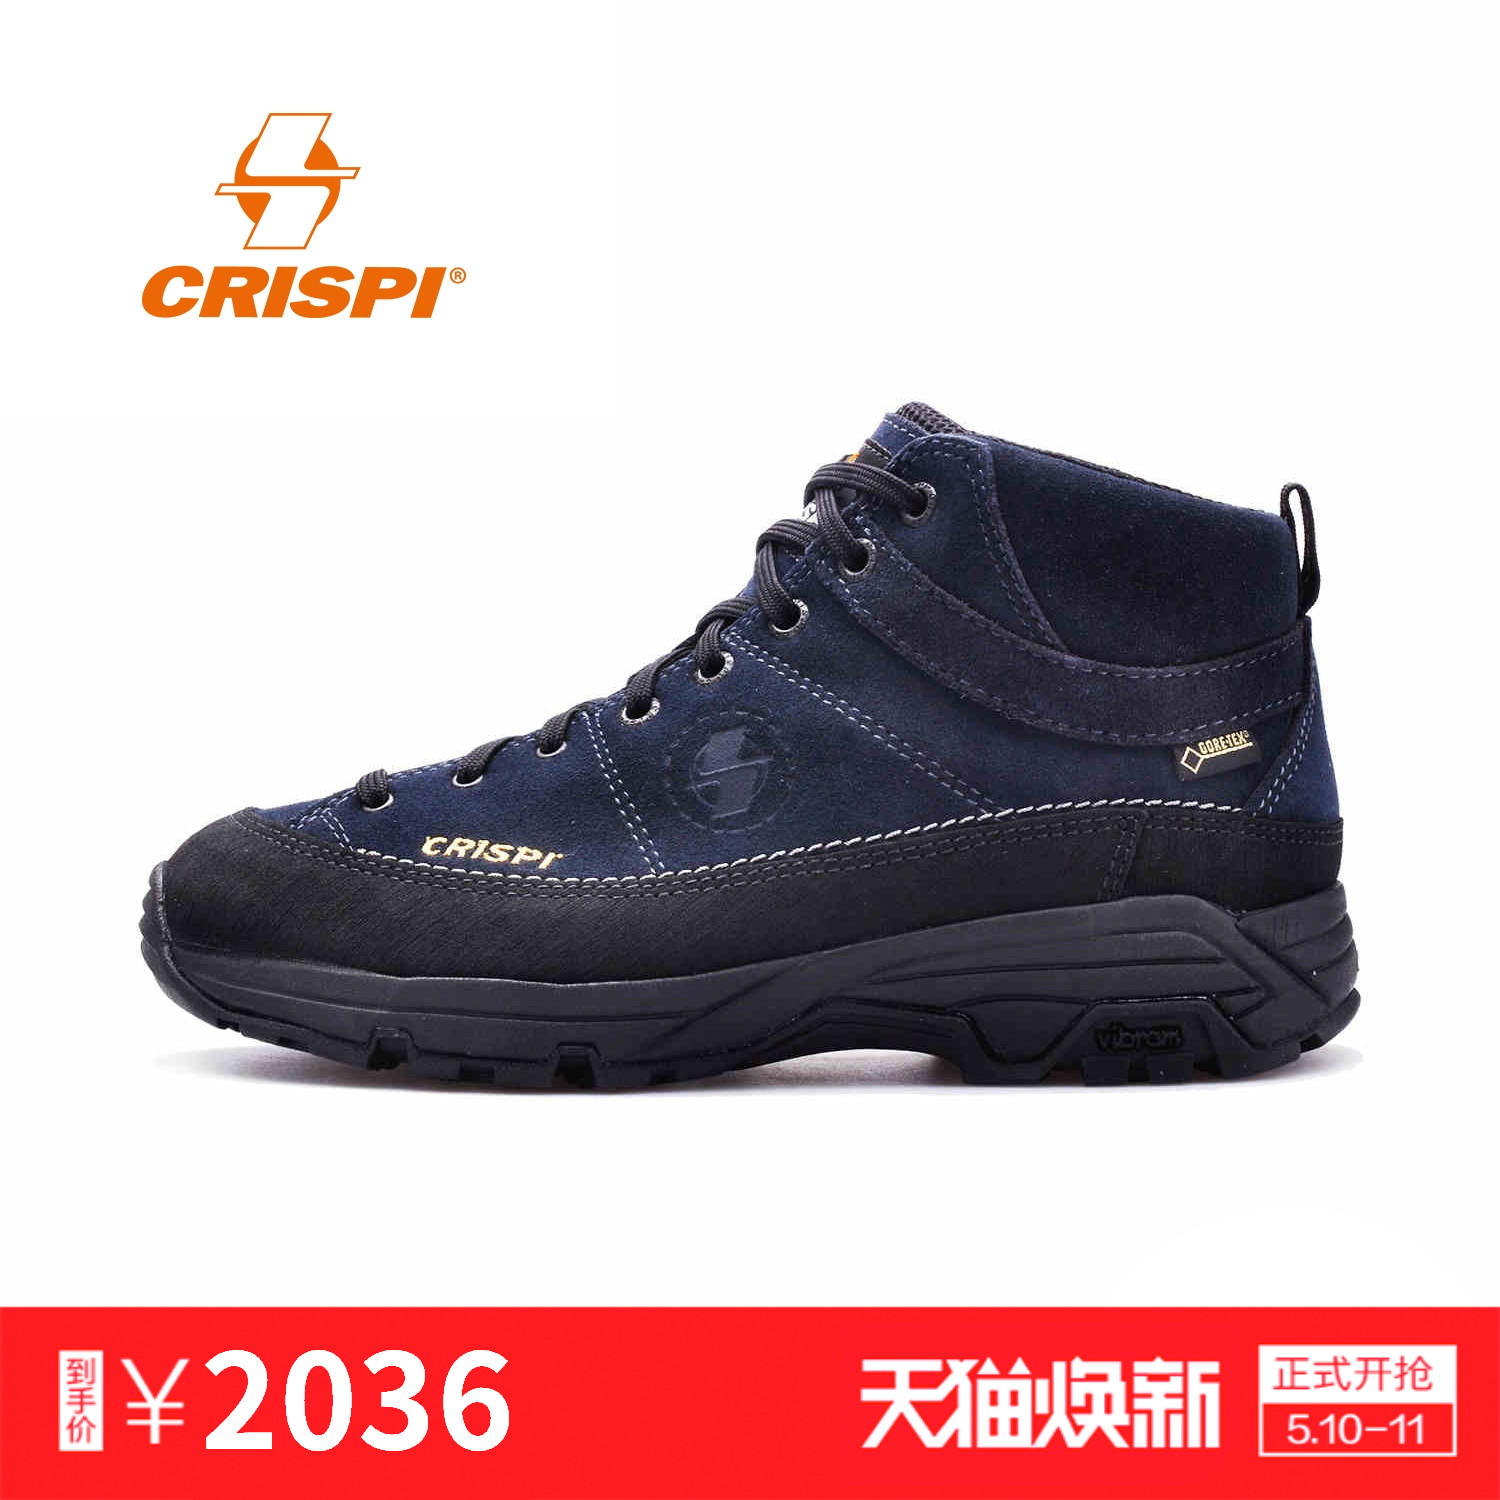 CRISPI a way walking shoes men and women waterproof breathable wear-resistant anti-slip outdoor hiking shoes 8009643